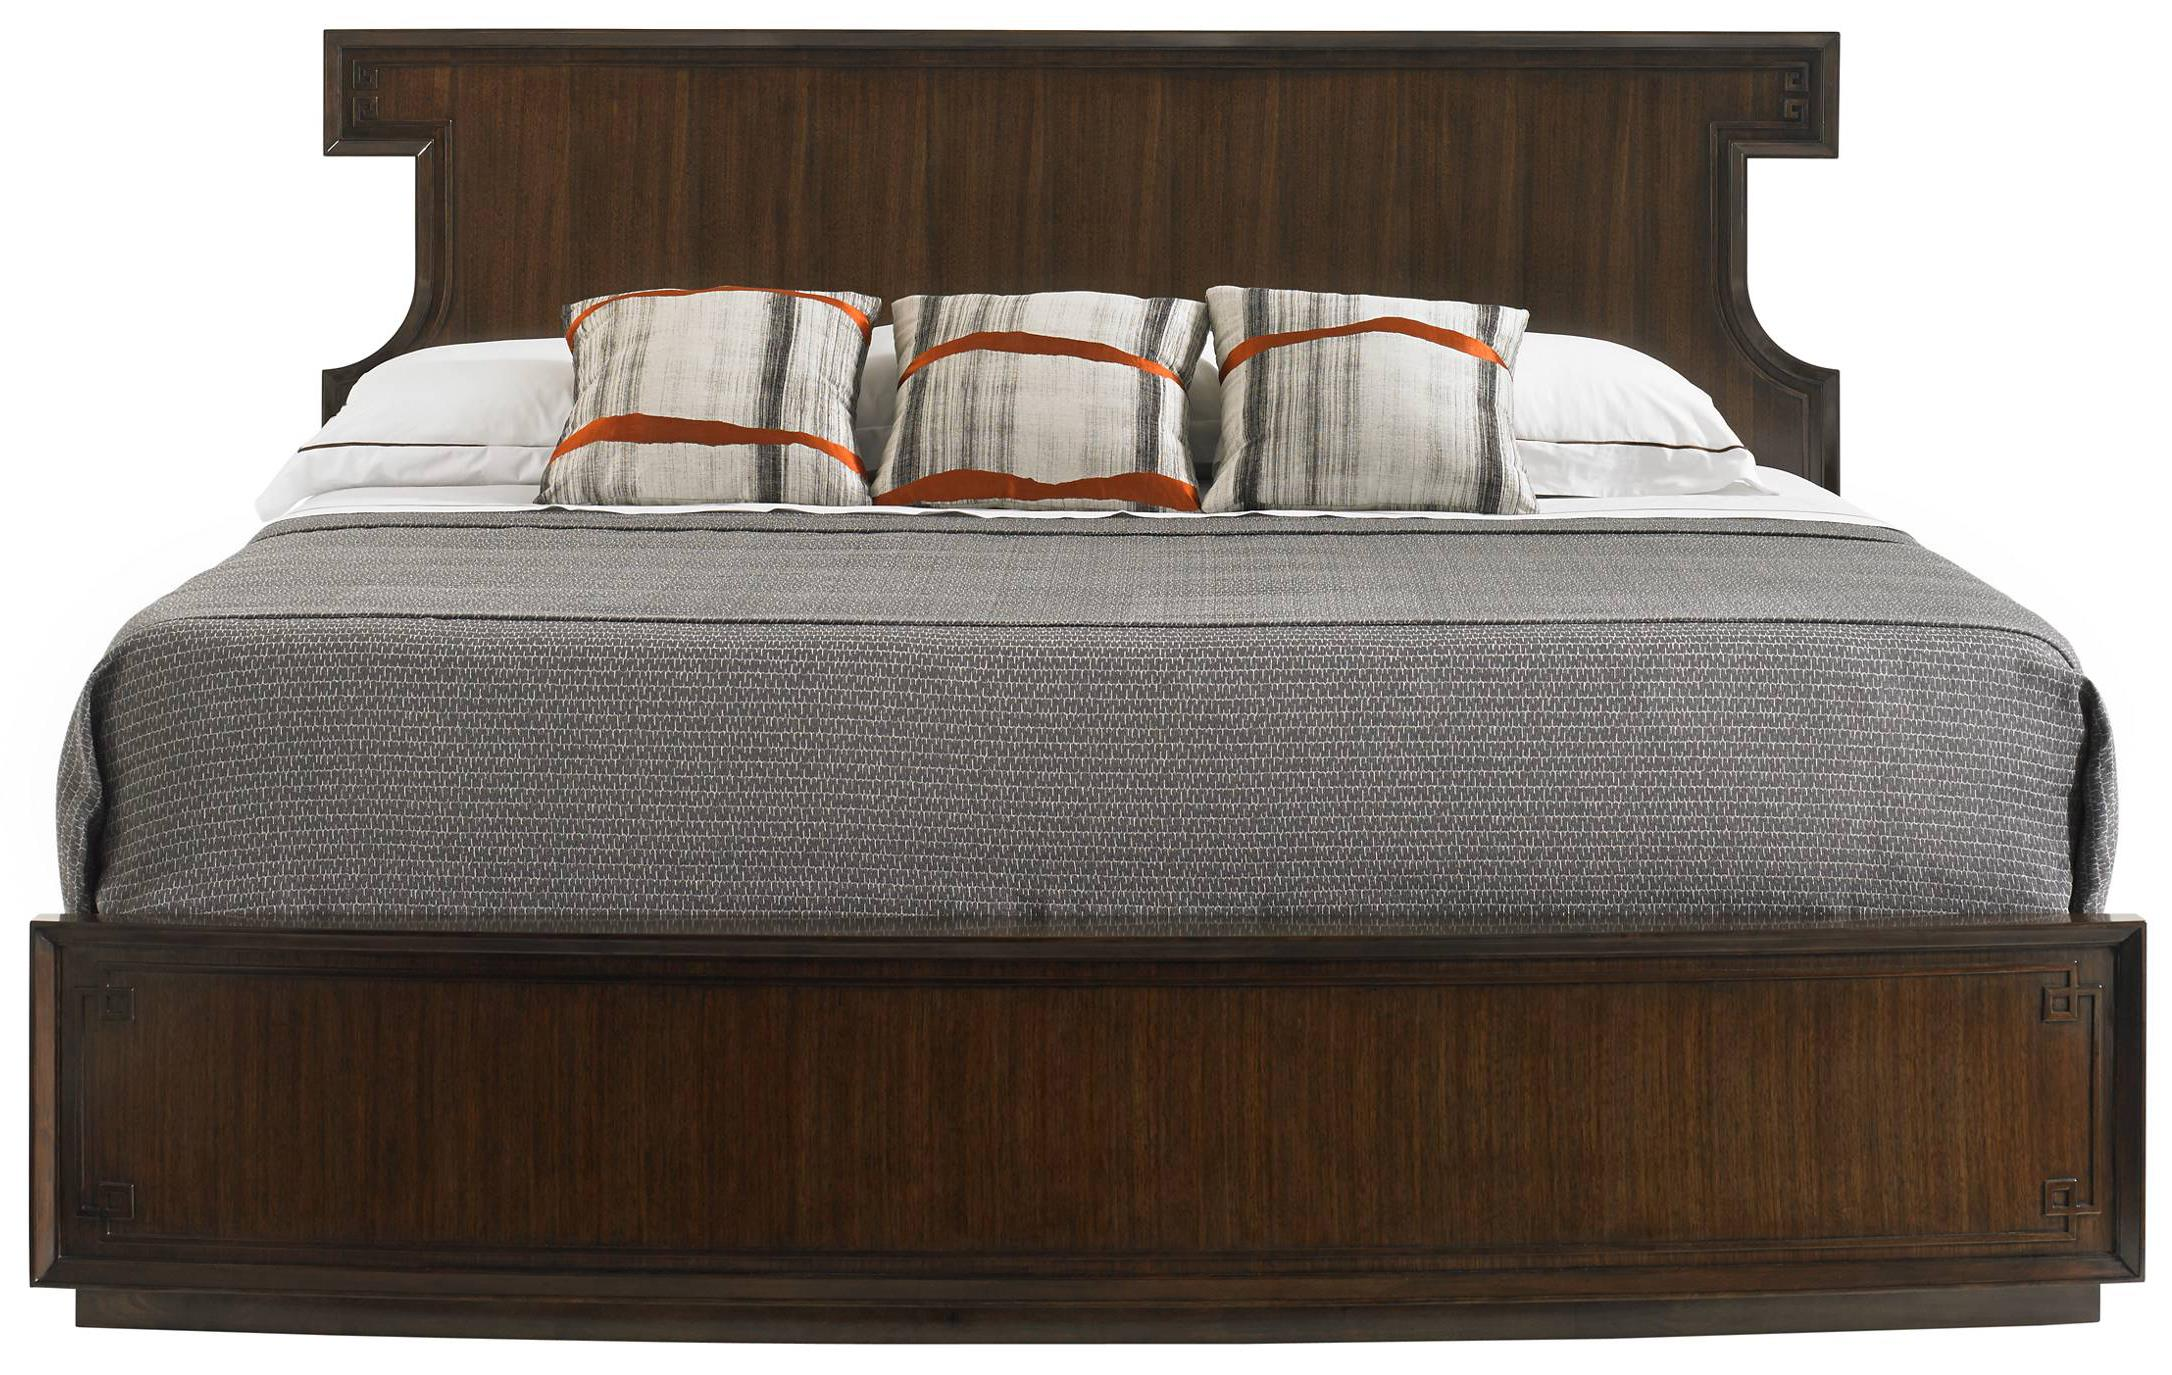 Stanley Furniture Crestaire California King Southridge Bed - Item Number: 436-13-46